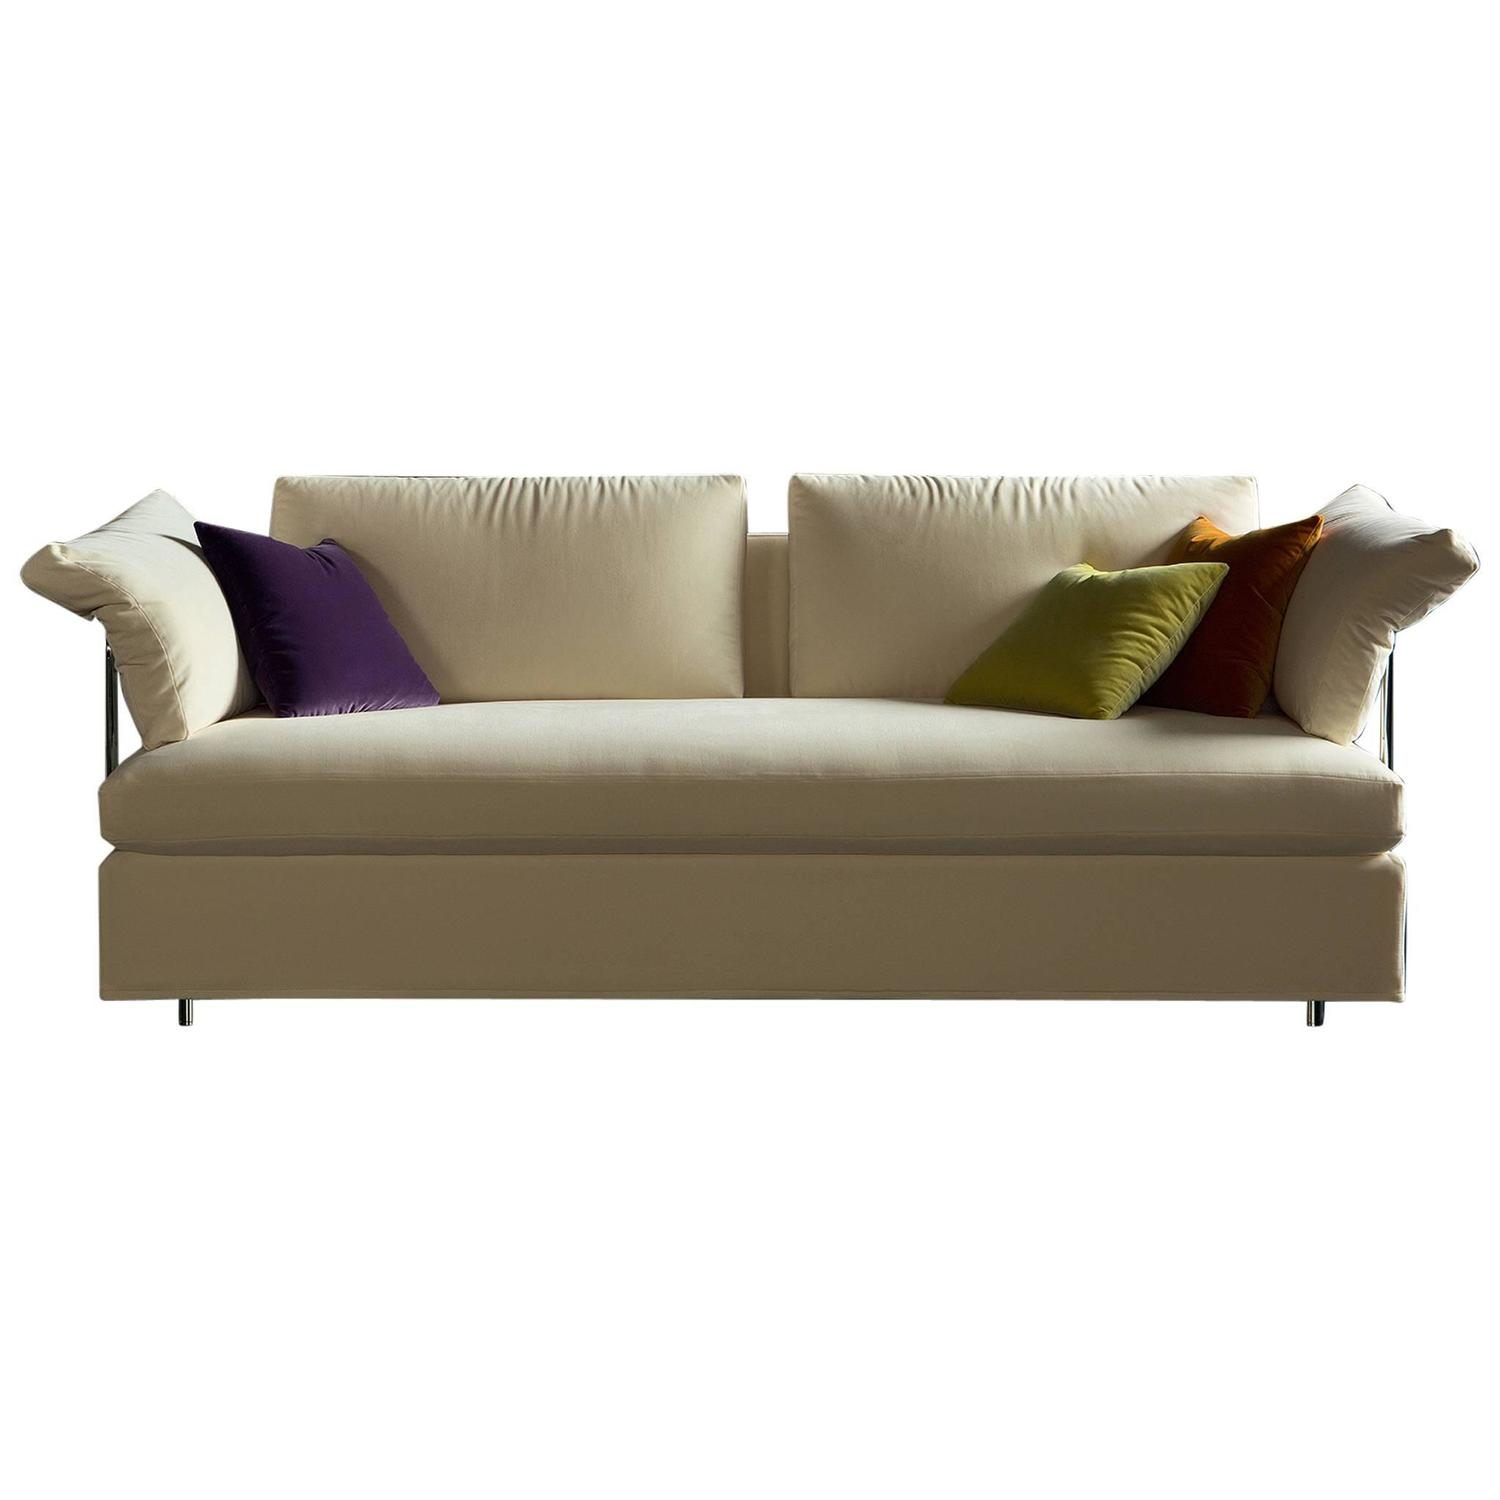 100 cm wide sofa bed chesterfield cheap 150cm italian modern sb46 with arms